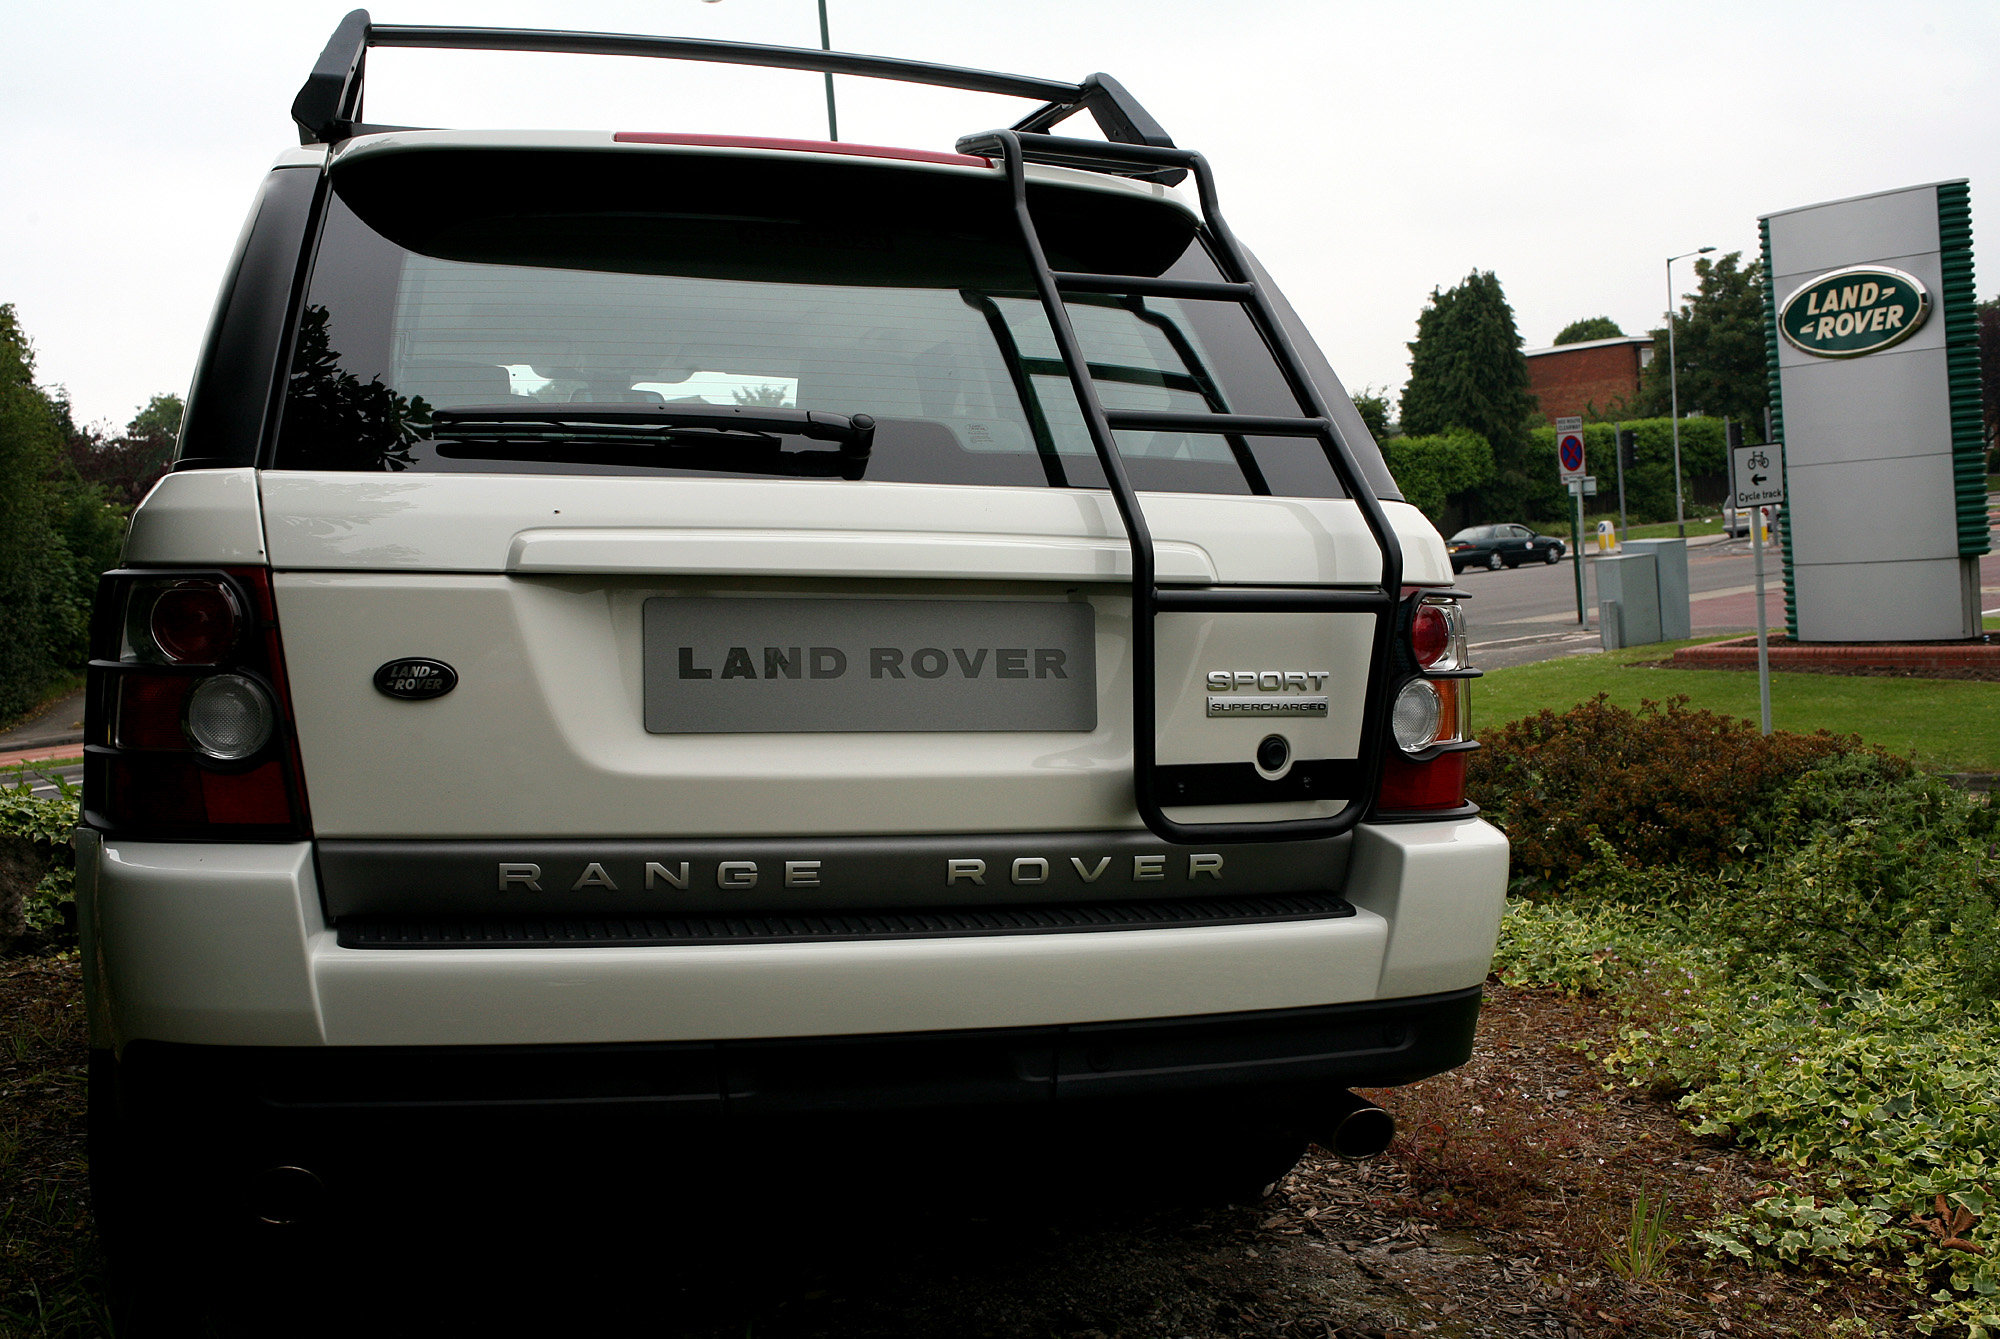 Ponzi scheme plotters splurged on Range Rover travel and $4 000